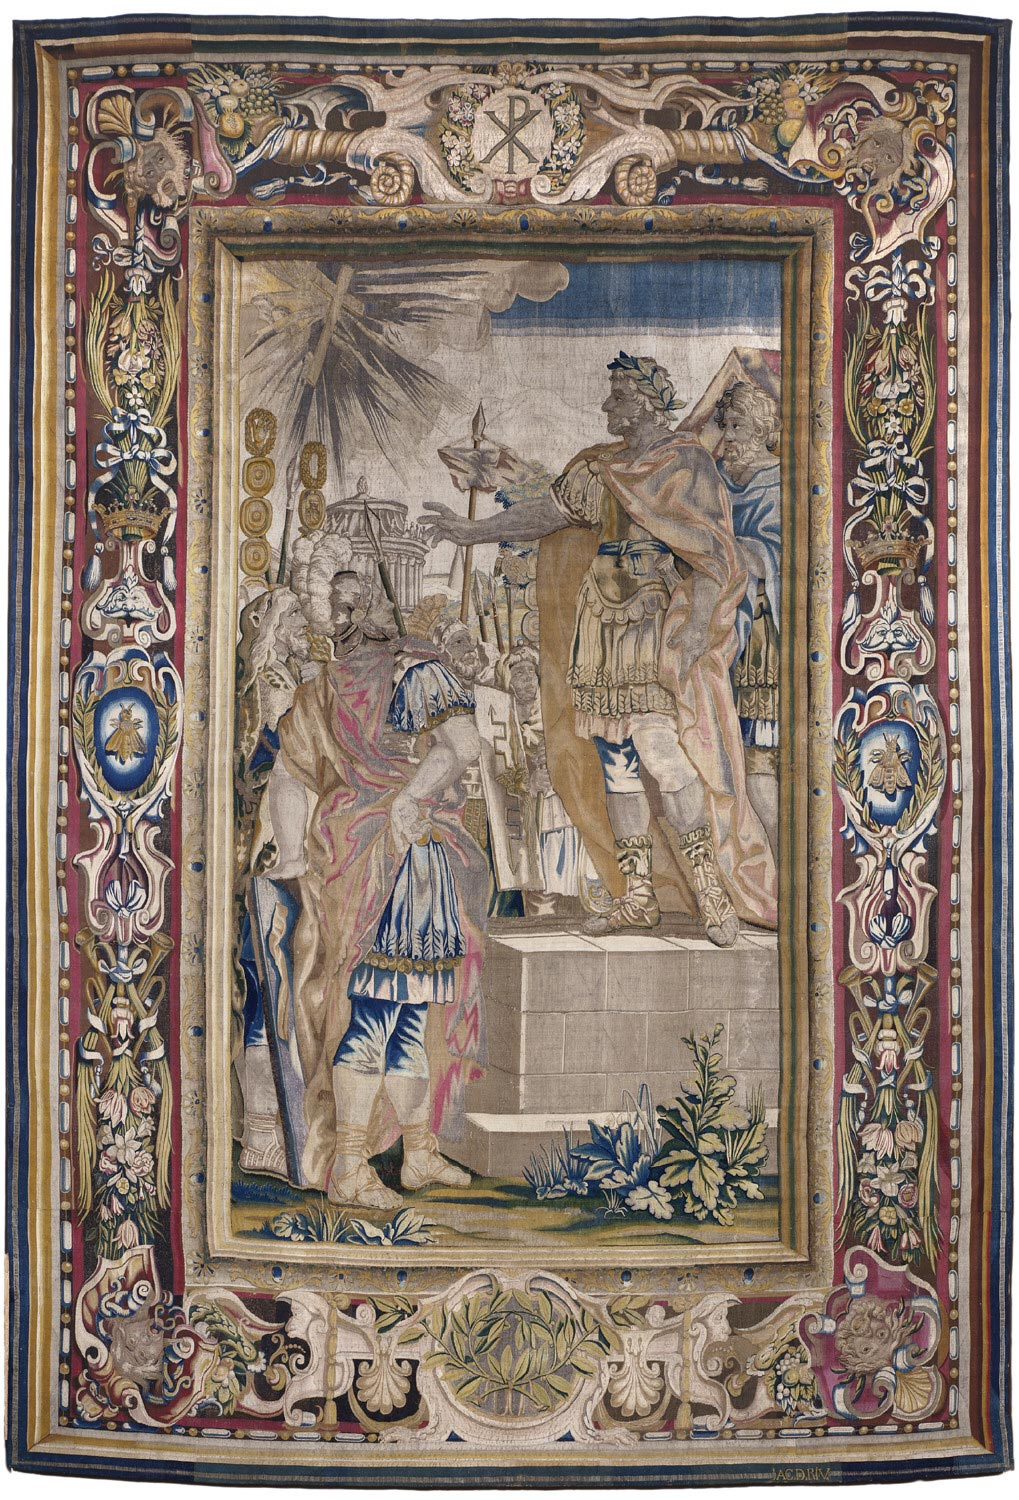 Tapestry showing the Apparition of the Cross before Constantine